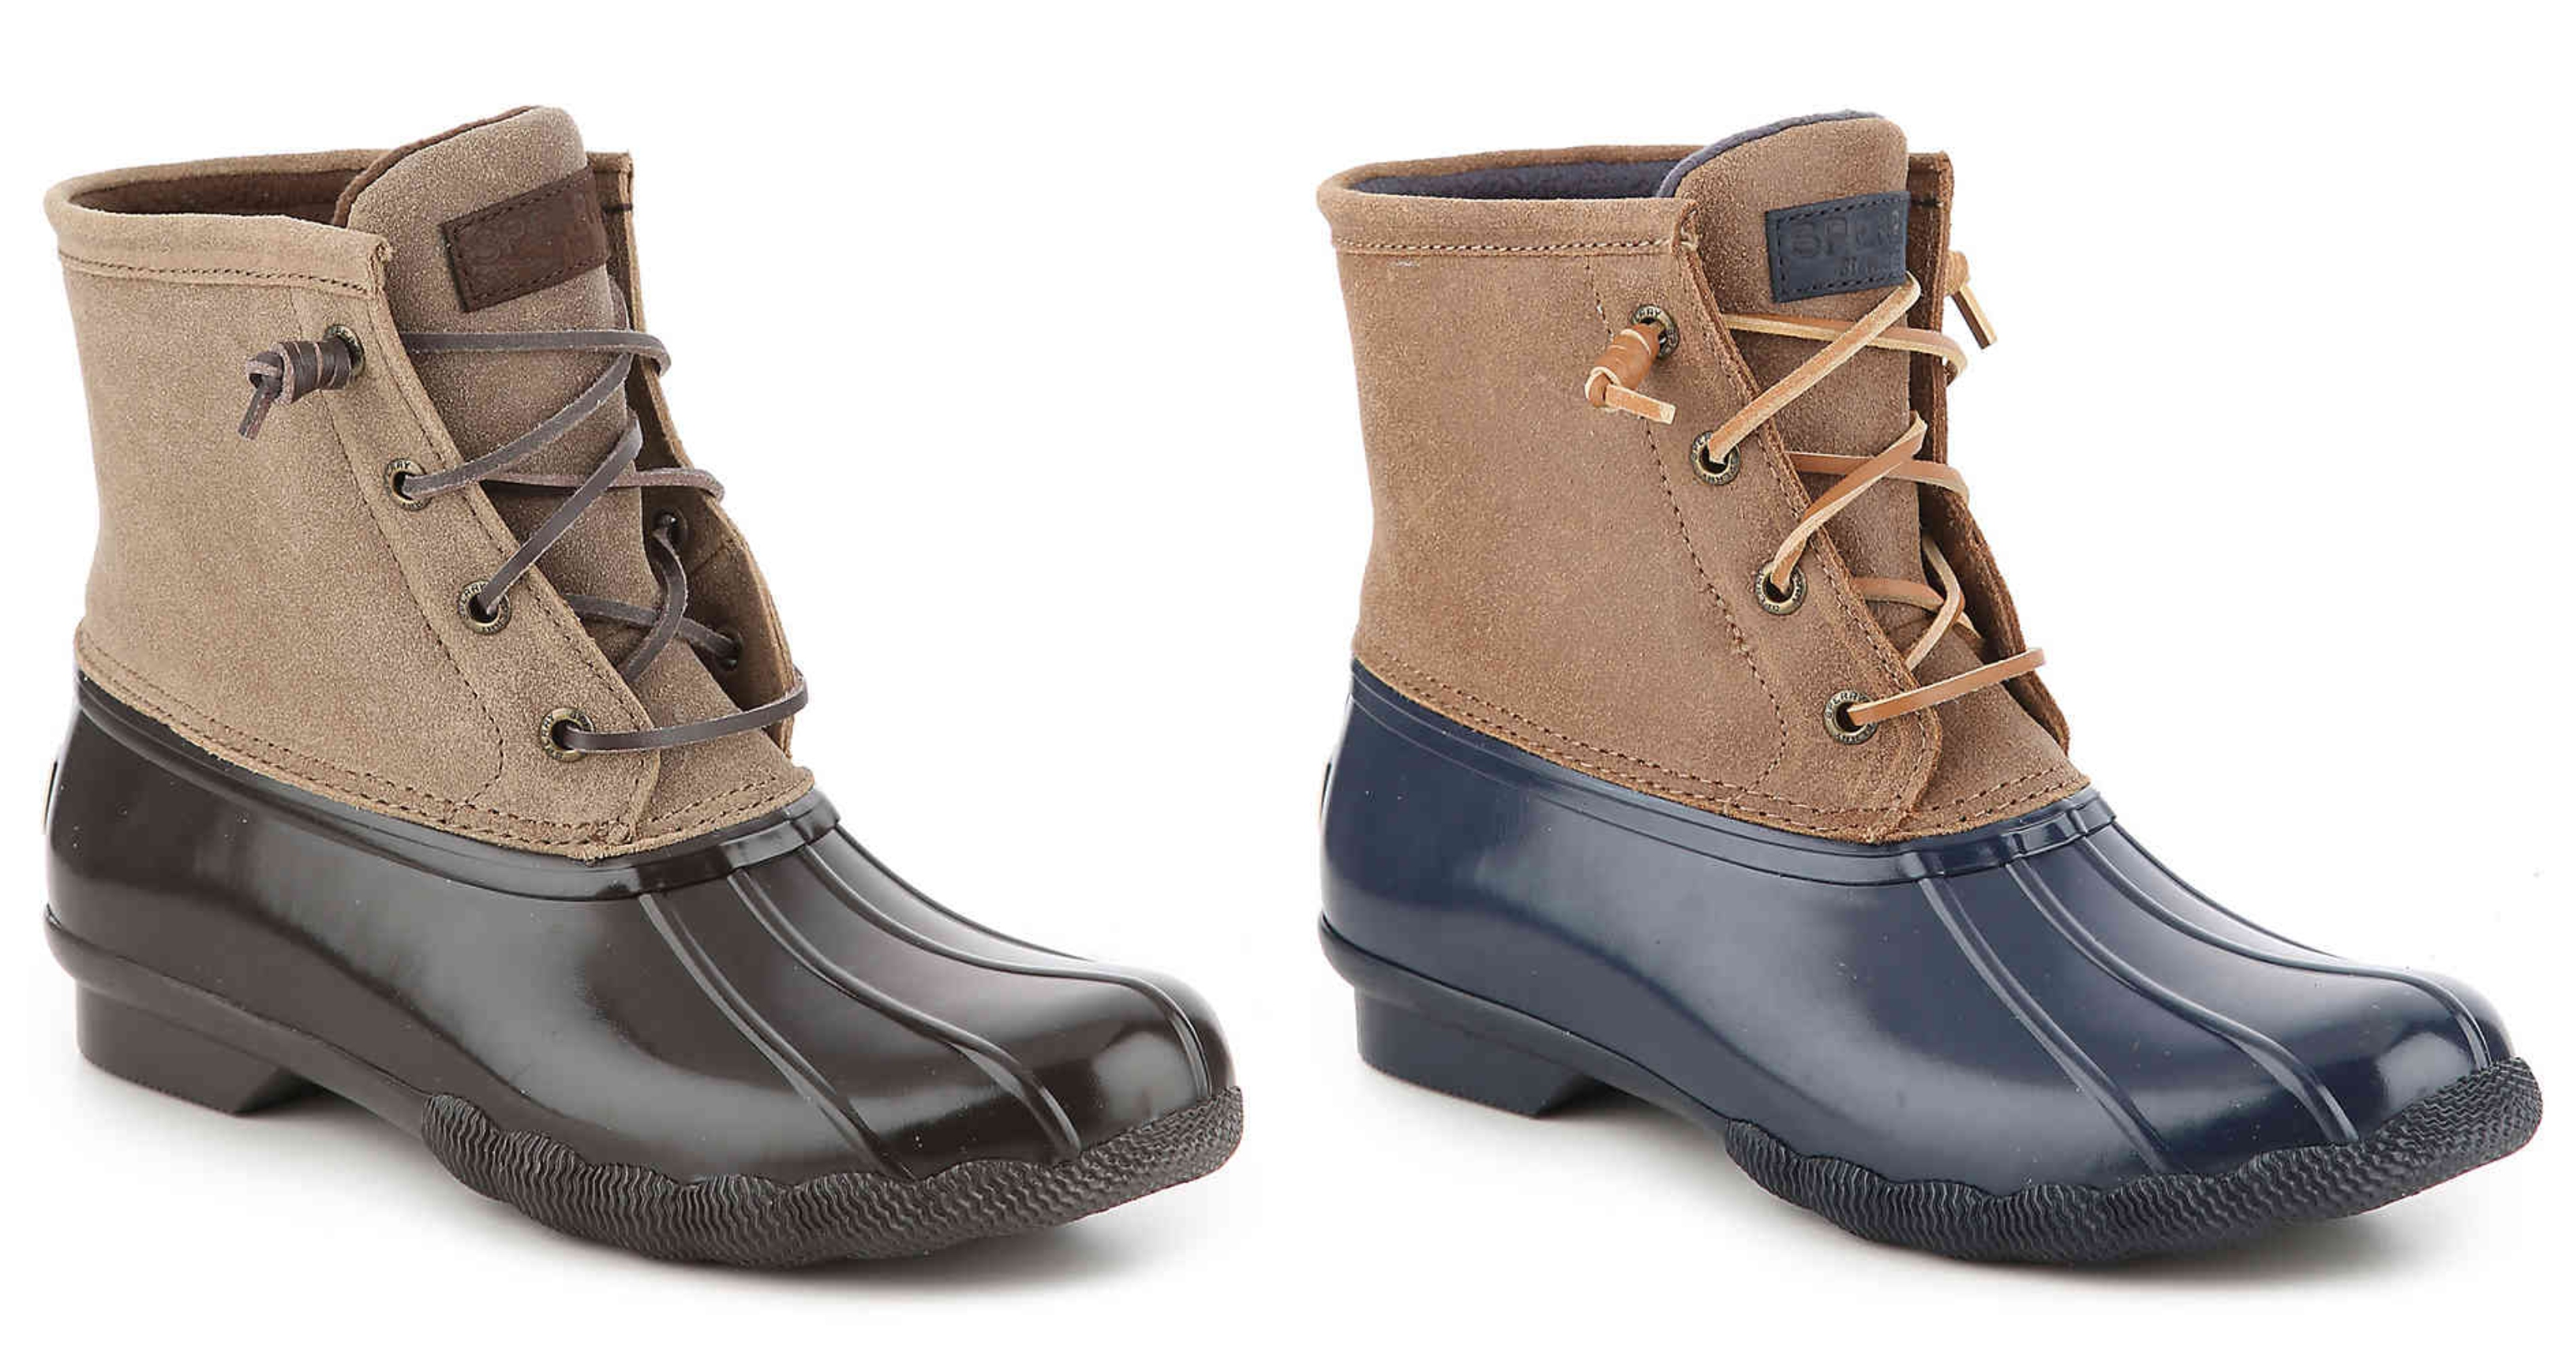 DSW: Sperry Duck Boots – only $72 (reg